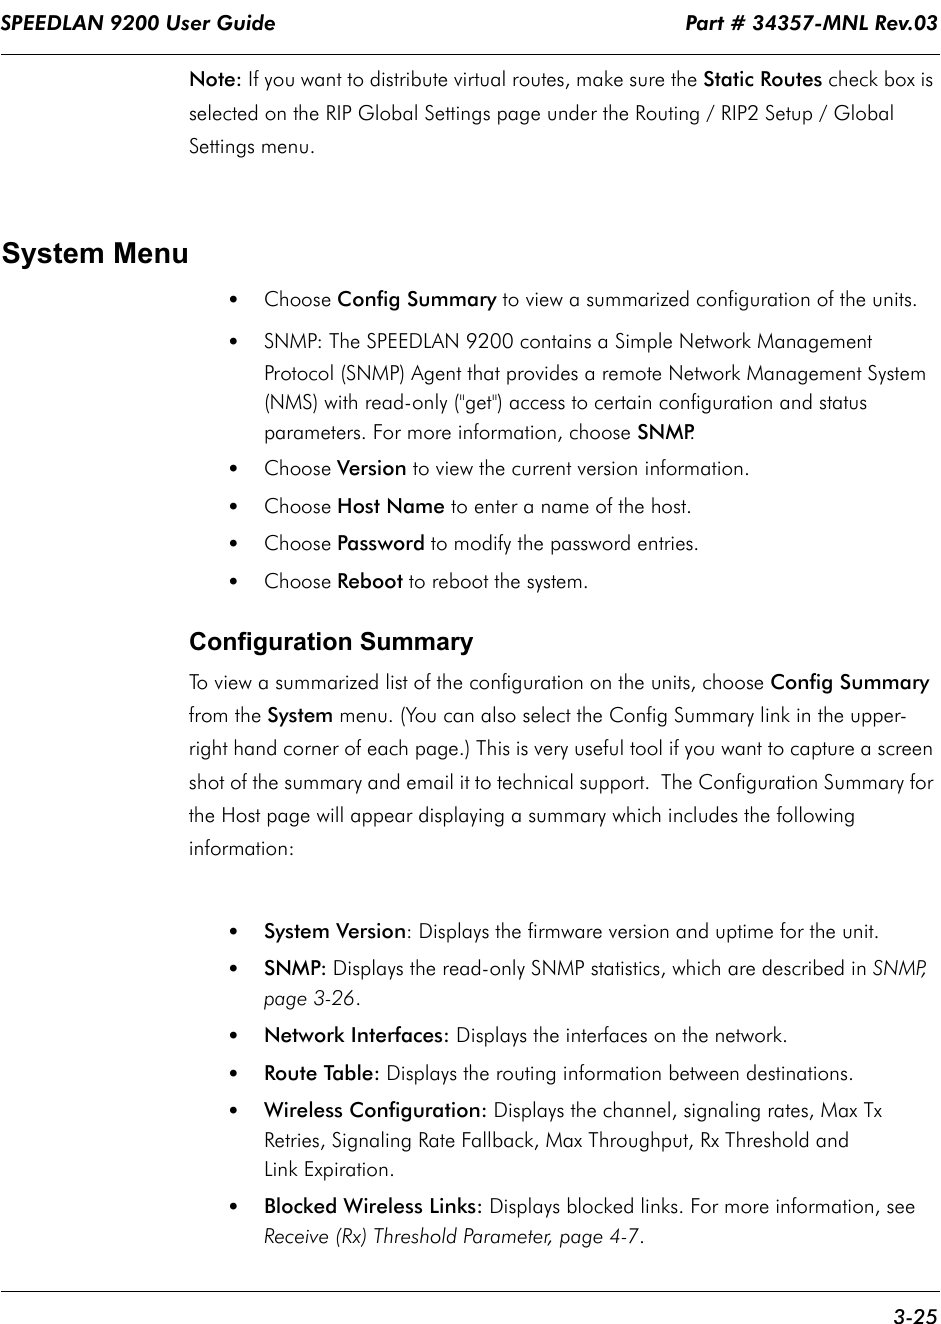 """SPEEDLAN 9200 User Guide                                                                    Part # 34357-MNL Rev.03      3-25                                                                                                                                                              Note: If you want to distribute virtual routes, make sure the Static Routes check box is selected on the RIP Global Settings page under the Routing / RIP2 Setup / Global Settings menu.    System Menu•Choose Config Summary to view a summarized configuration of the units.•SNMP: The SPEEDLAN 9200 contains a Simple Network Management Protocol (SNMP) Agent that provides a remote Network Management System (NMS) with read-only (""""get"""") access to certain configuration and status parameters. For more information, choose SNMP.•Choose Version to view the current version information.•Choose Host Name to enter a name of the host.•Choose Password to modify the password entries.•Choose Reboot to reboot the system. Configuration SummaryTo view a summarized list of the configuration on the units, choose Config Summary from the System menu. (You can also select the Config Summary link in the upper-right hand corner of each page.) This is very useful tool if you want to capture a screen shot of the summary and email it to technical support.  The Configuration Summary for the Host page will appear displaying a summary which includes the following information:•System Version: Displays the firmware version and uptime for the unit.•SNMP: Displays the read-only SNMP statistics, which are described in SNMP, page 3-26.•Network Interfaces: Displays the interfaces on the network.•Route Table: Displays the routing information between destinations.•Wireless Configuration: Displays the channel, signaling rates, Max Tx Retries, Signaling Rate Fallback, Max Throughput, Rx Threshold andLink Expiration. •   Blocked Wireless Links: Displays blocked links. For more information, see Receive (Rx) Threshold Parameter, page 4-7."""